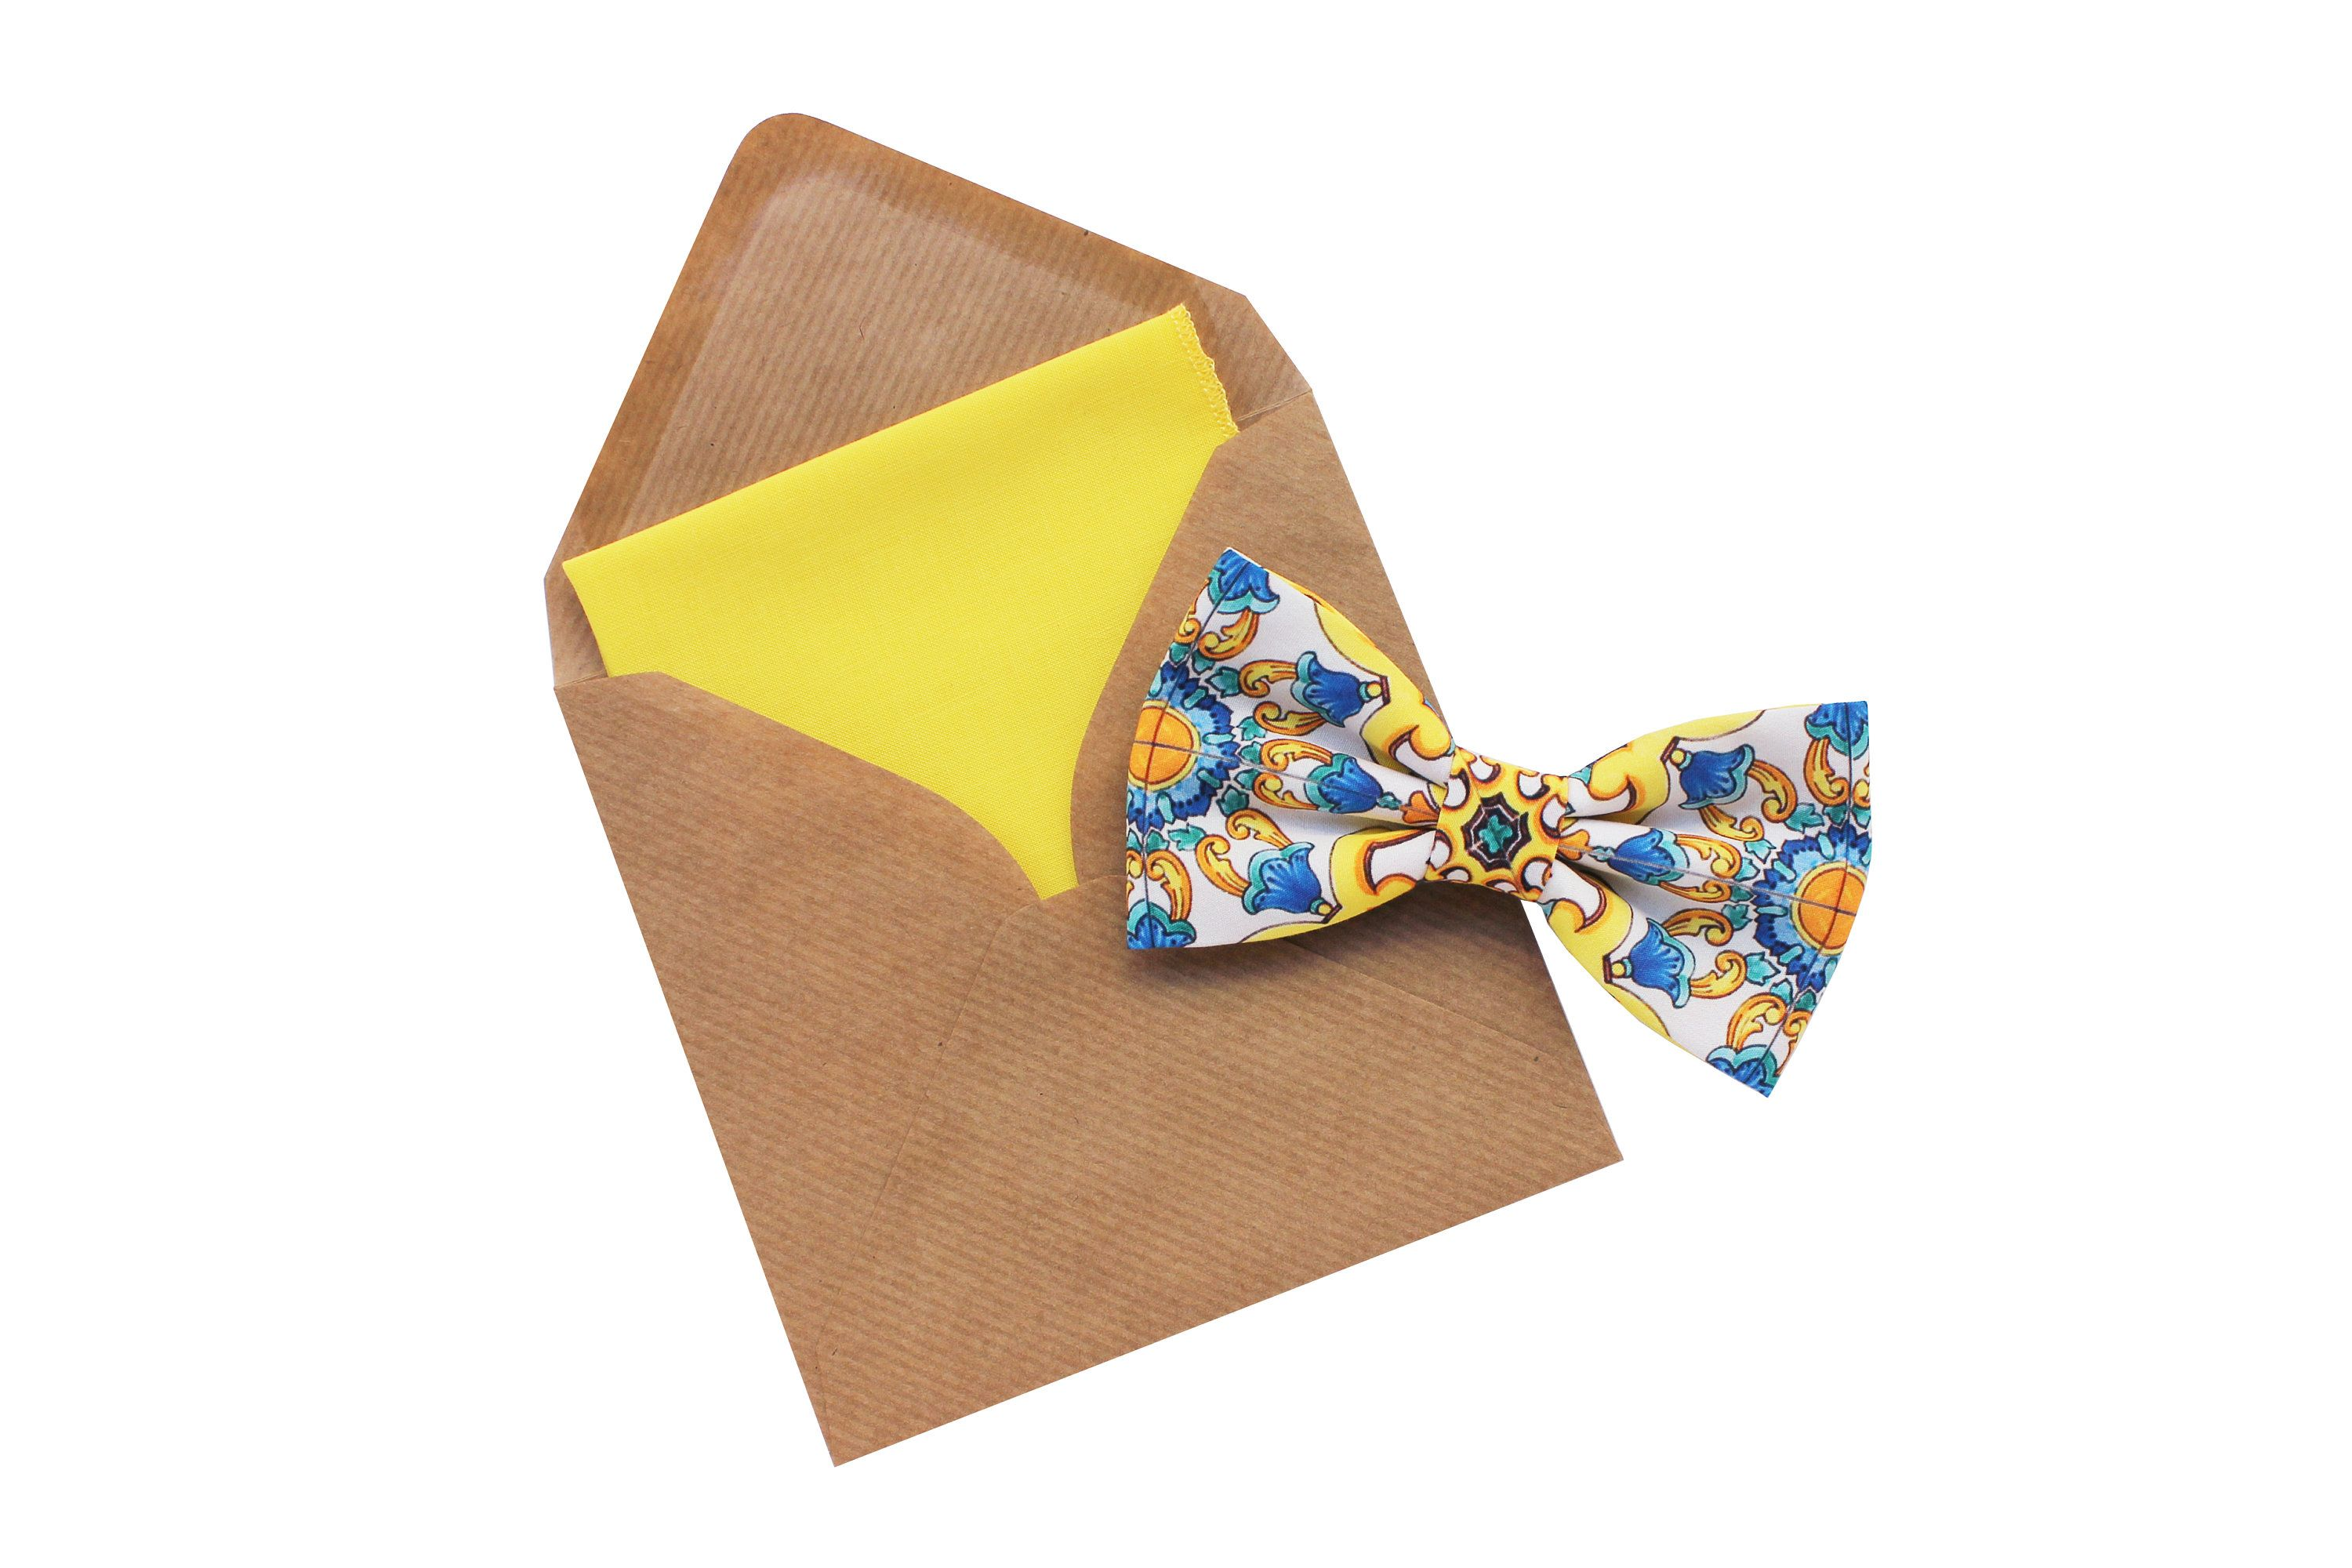 Majolica bow tie for men,floral print bow tie,tie for